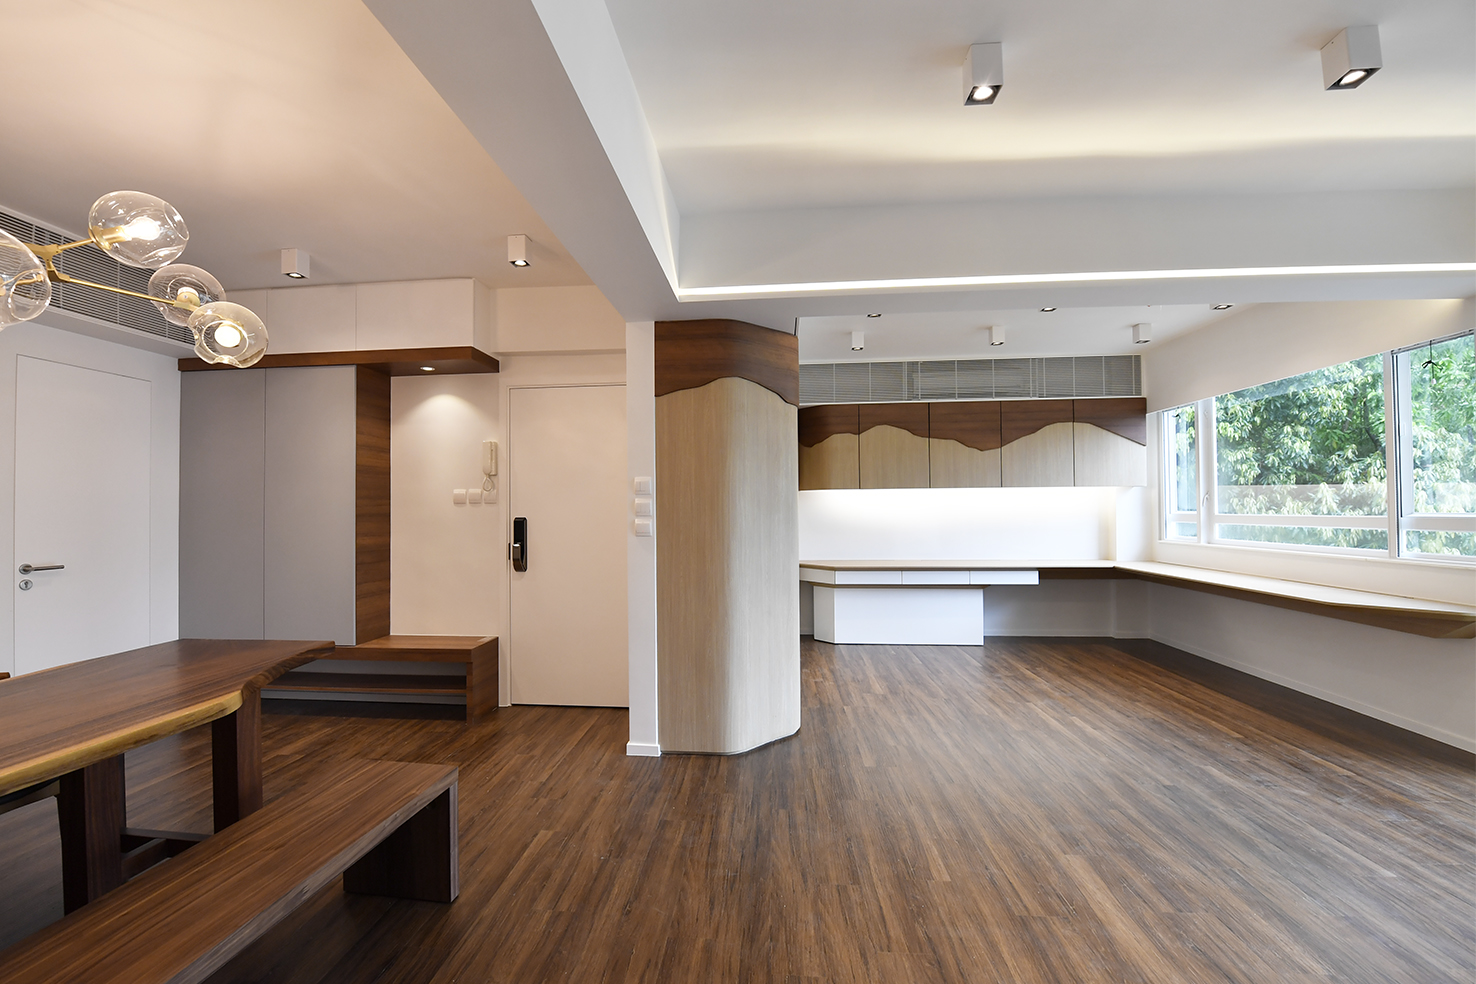 家居設計 Home Design hk 山景觀 Mountain Scape Apartment  (2)